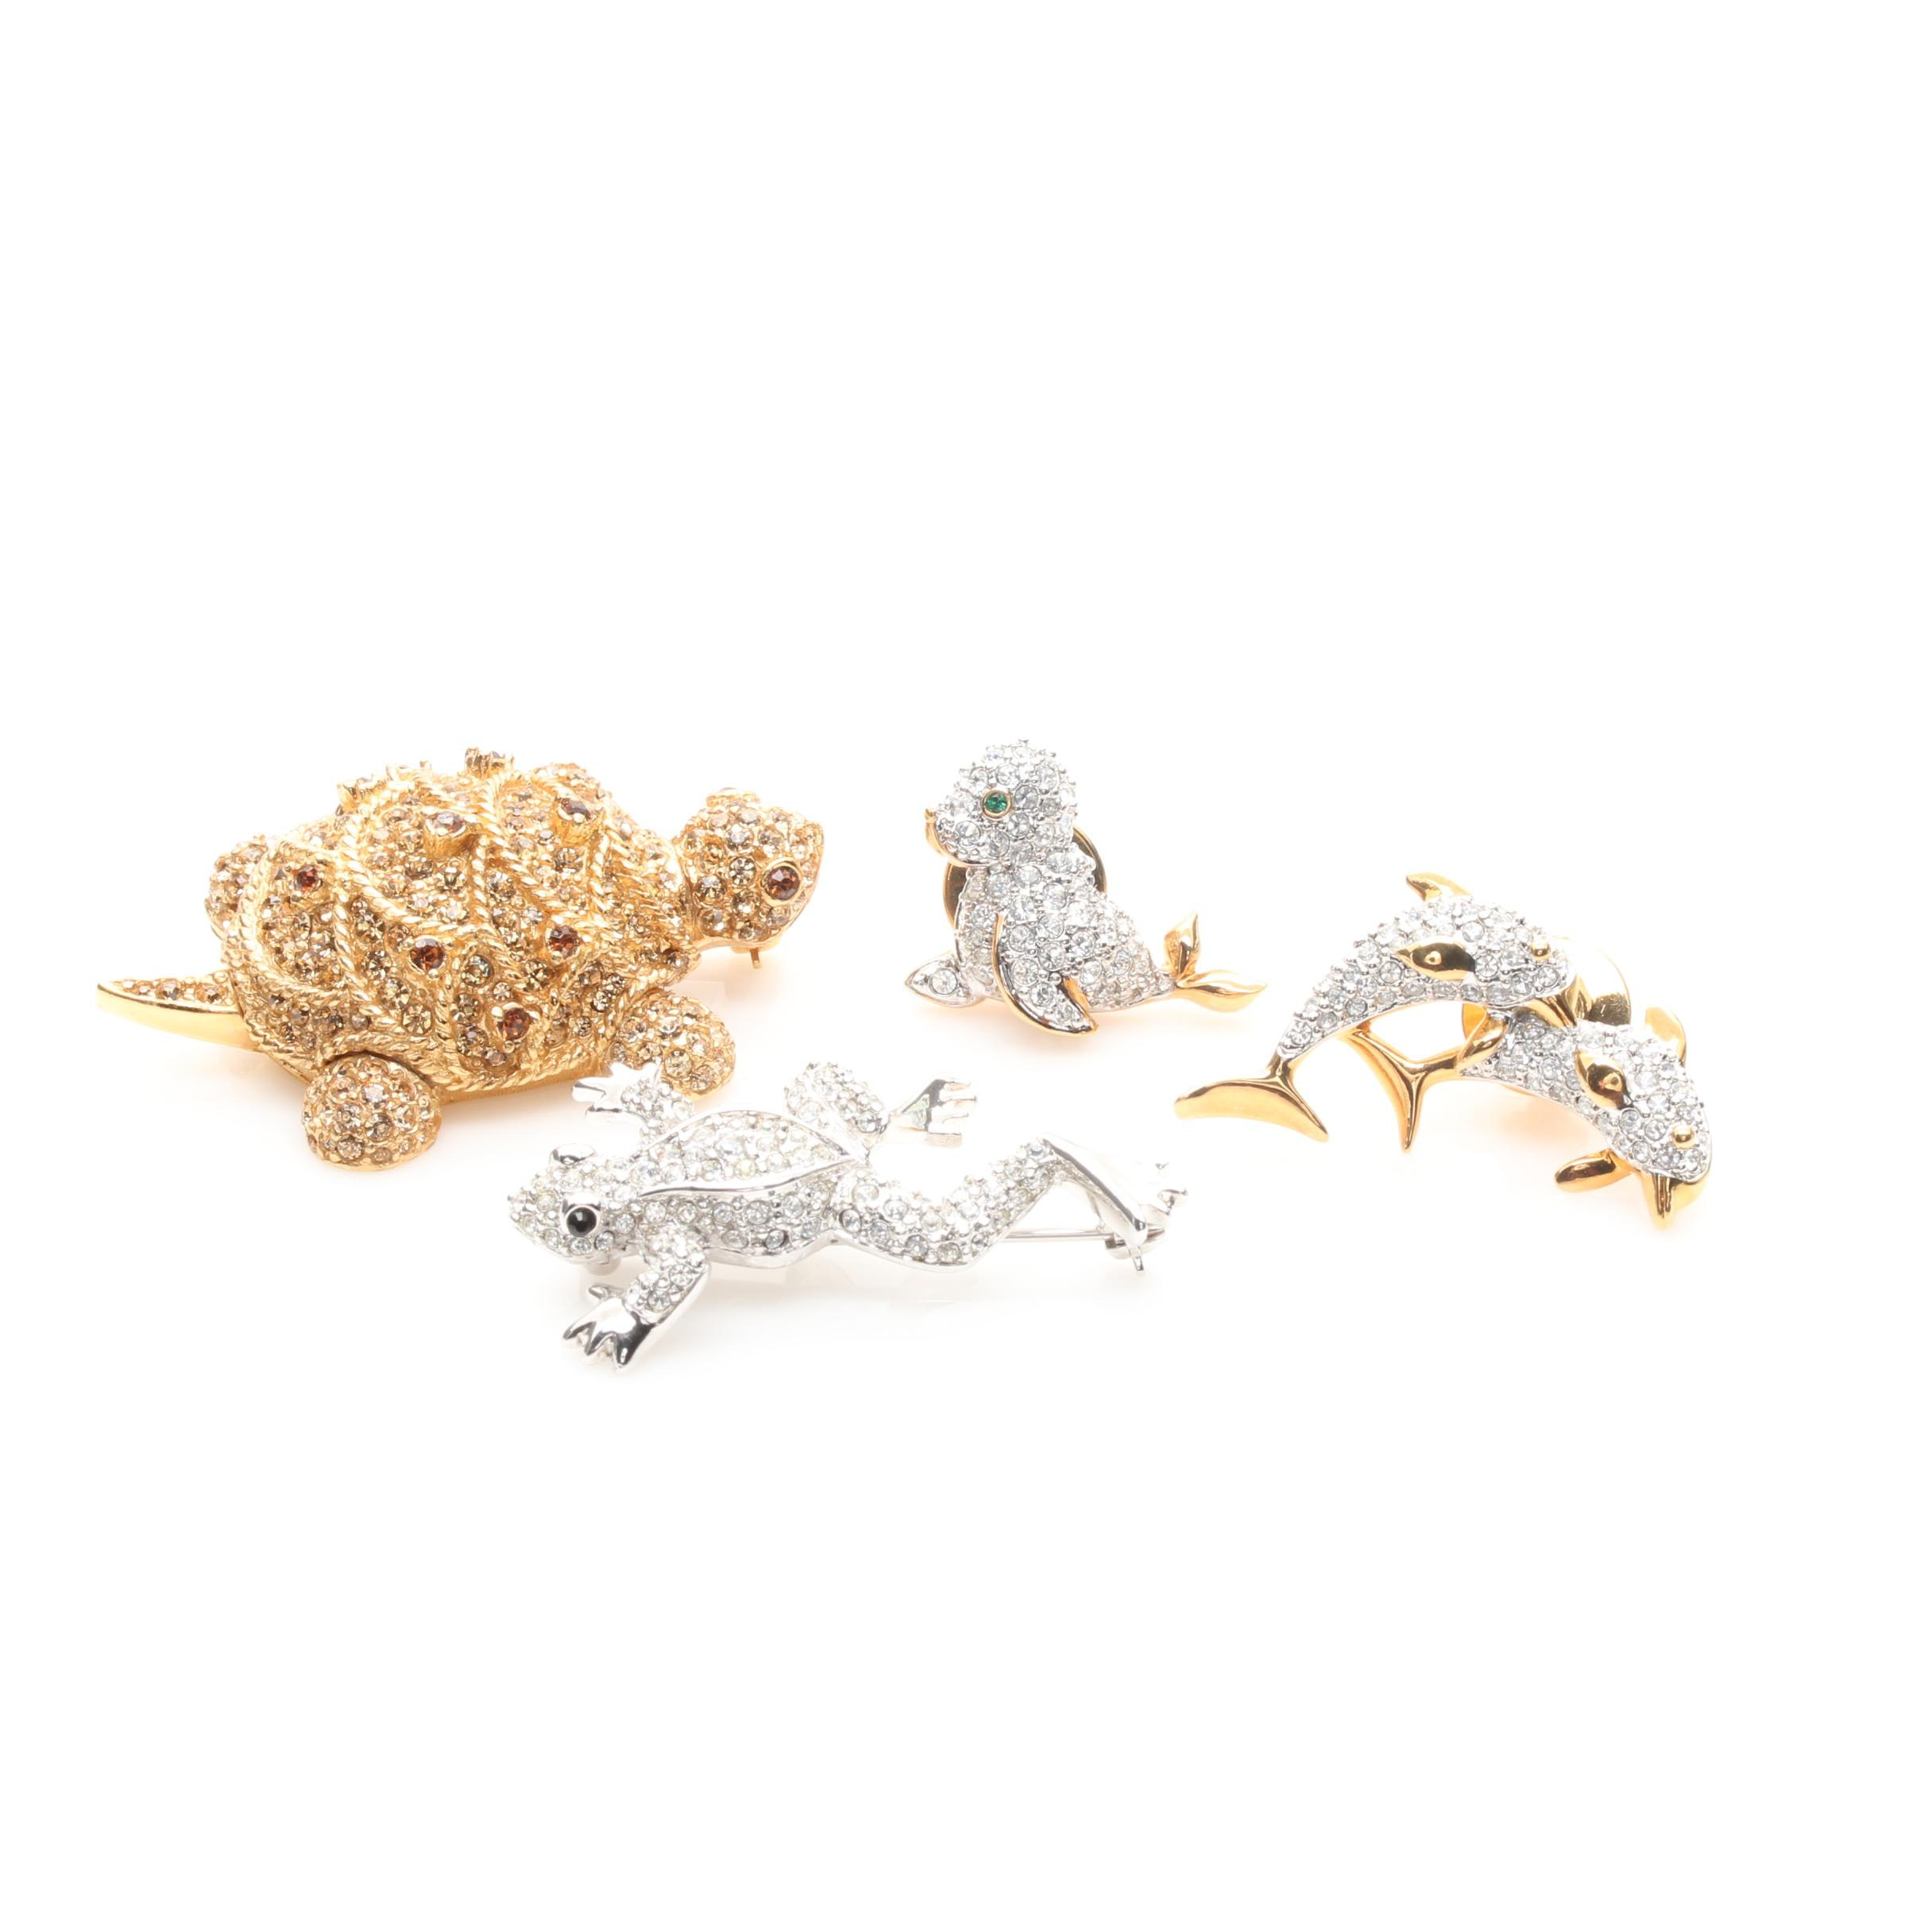 Ciner and Swarovski Animal Brooches and Pins